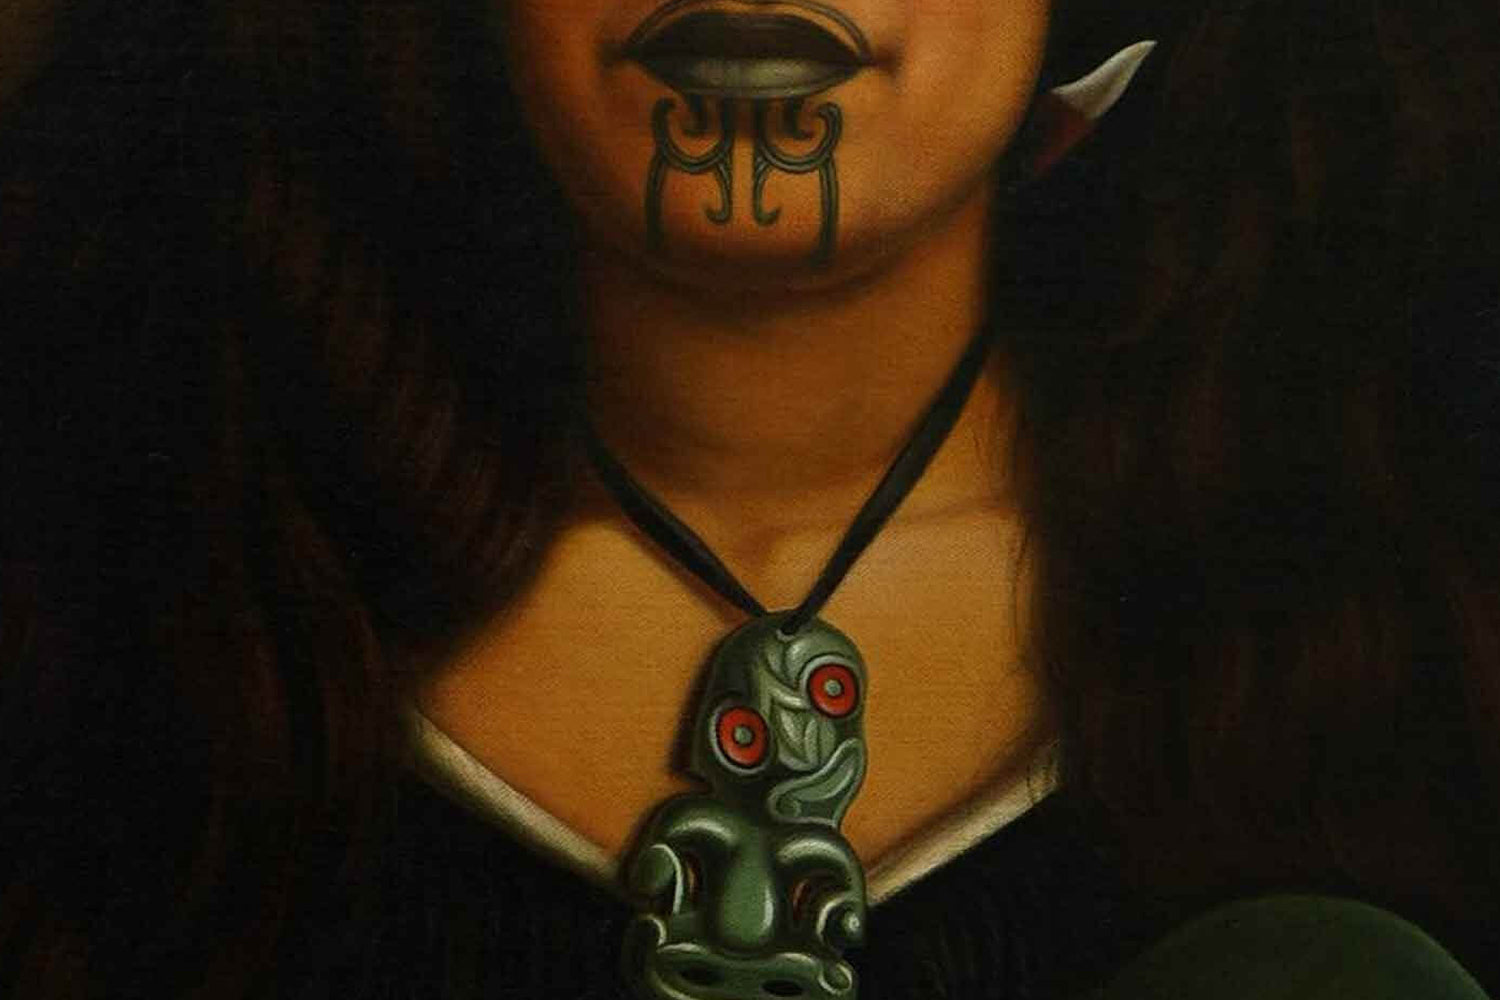 Maori necklace designs and the importance of jade to Maori culture